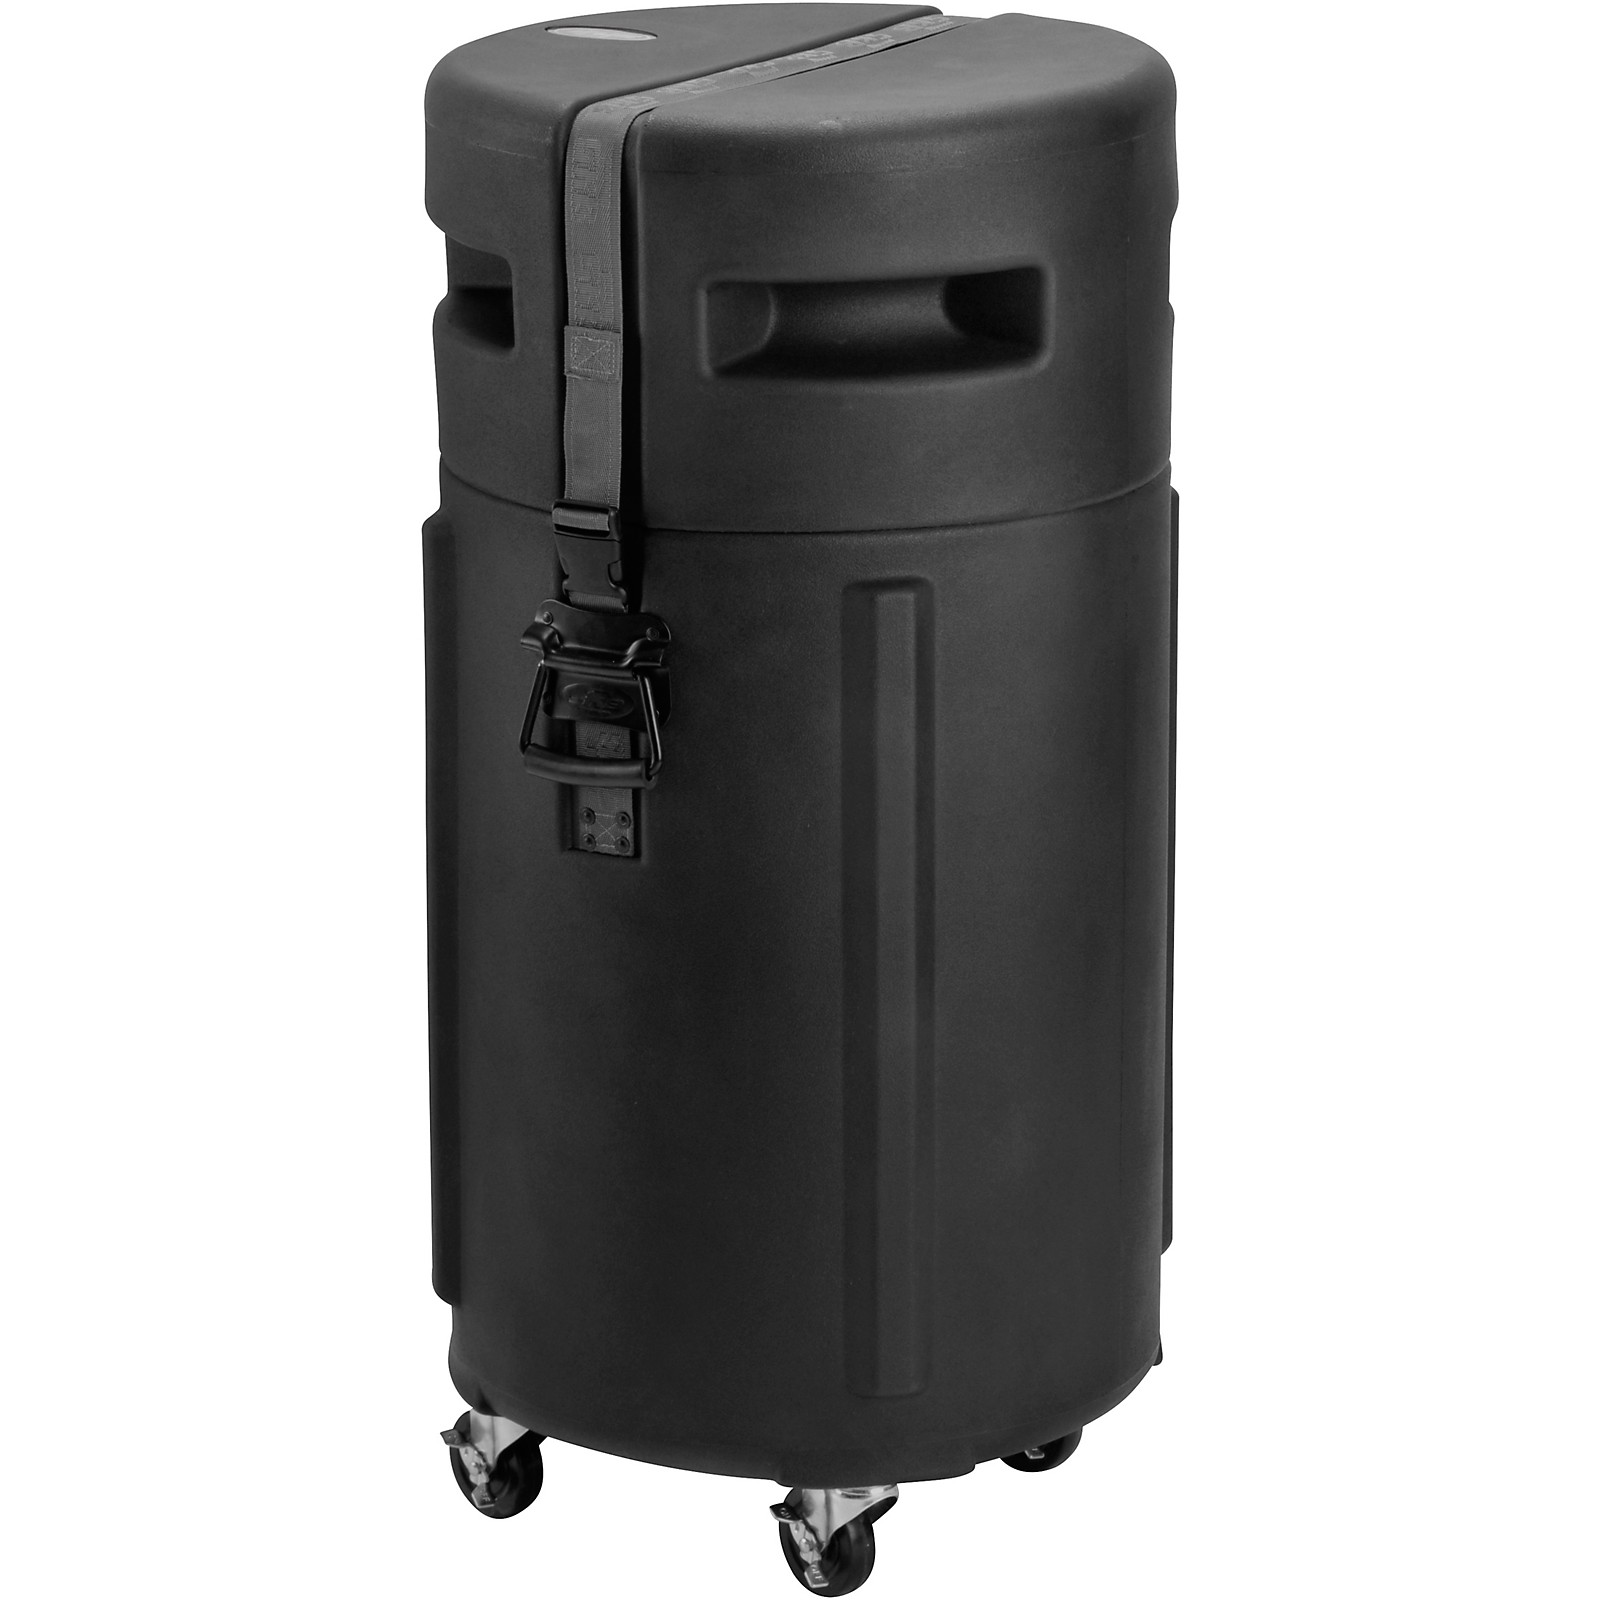 SKB Mid-sized Universal Conga Case with Casters